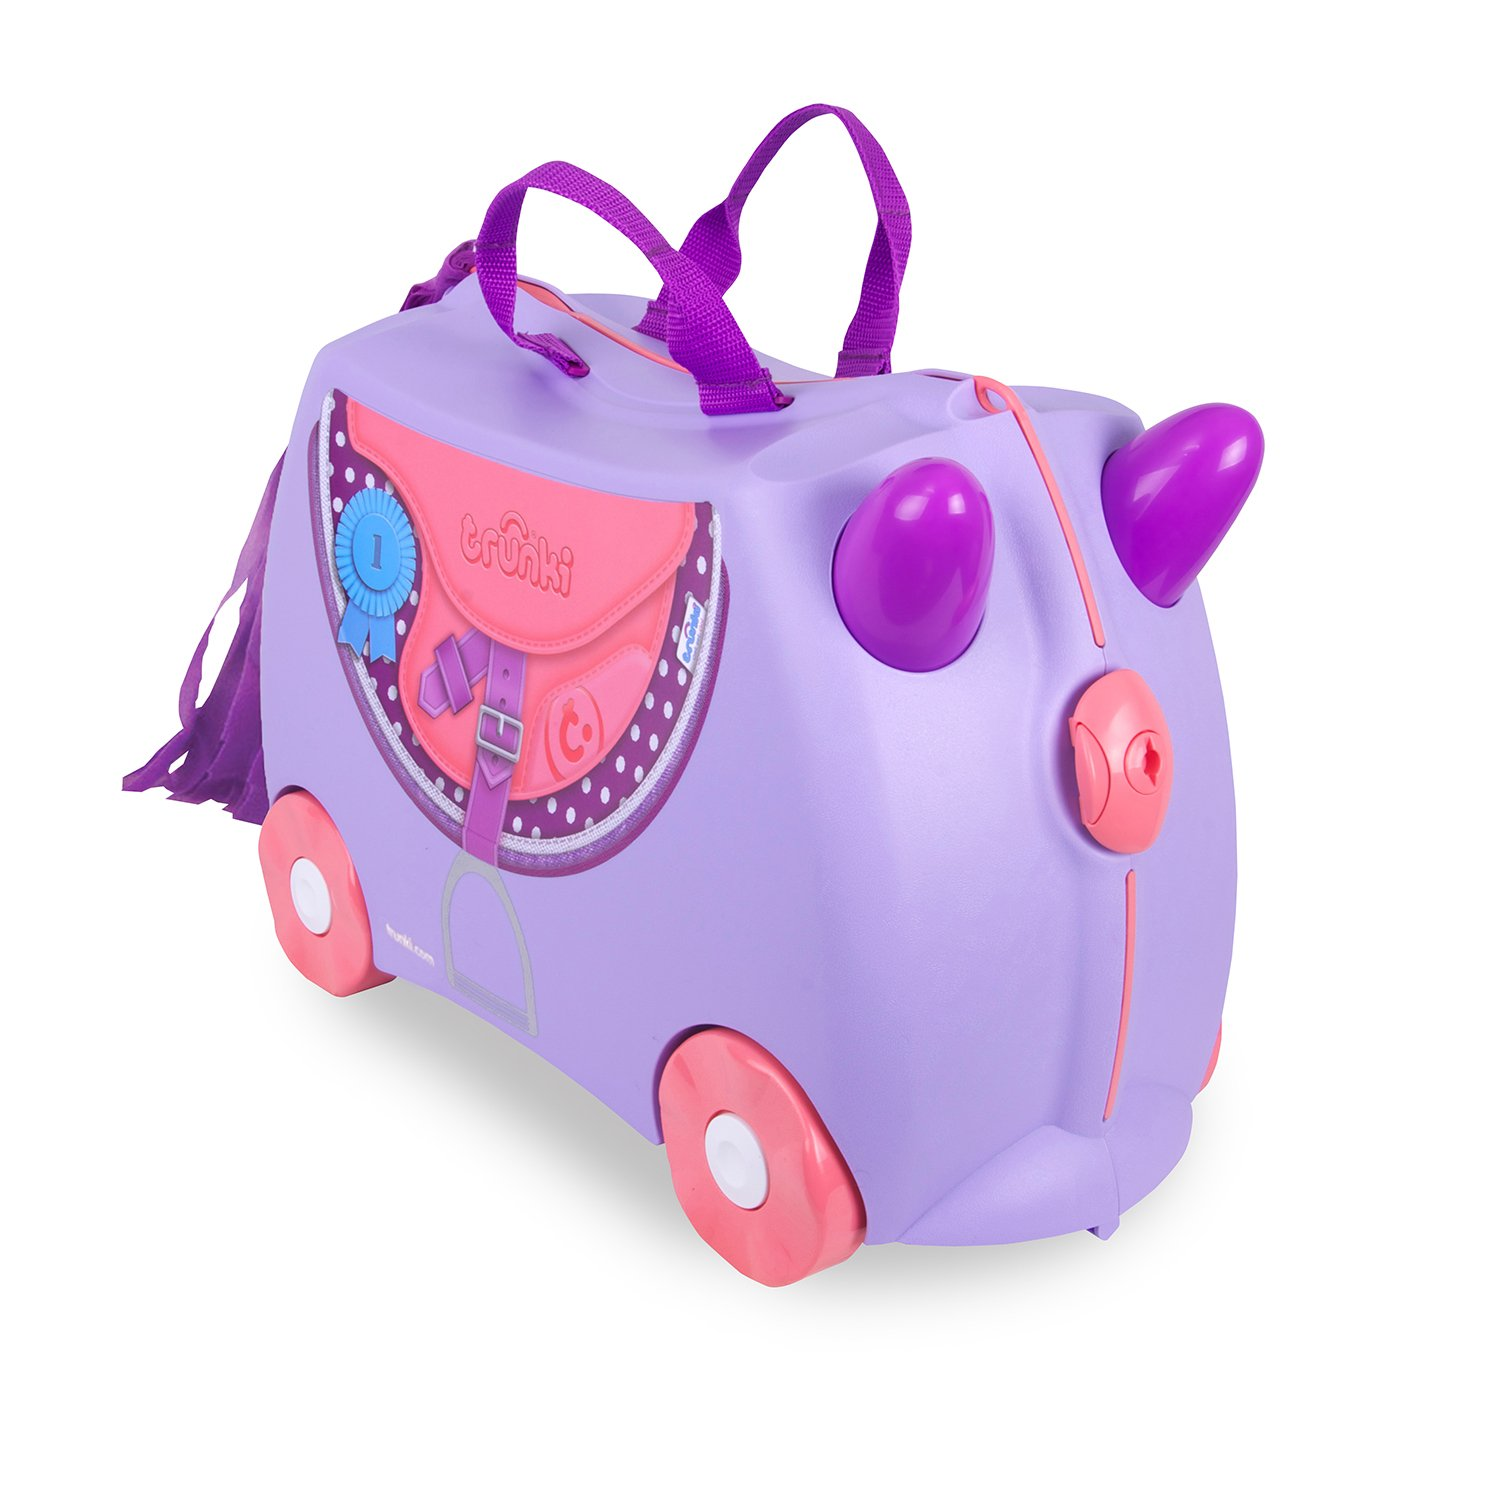 5426153ad958 Trunki Children s Ride-On Suitcase   Hand Luggage  Bluebell Pony ...